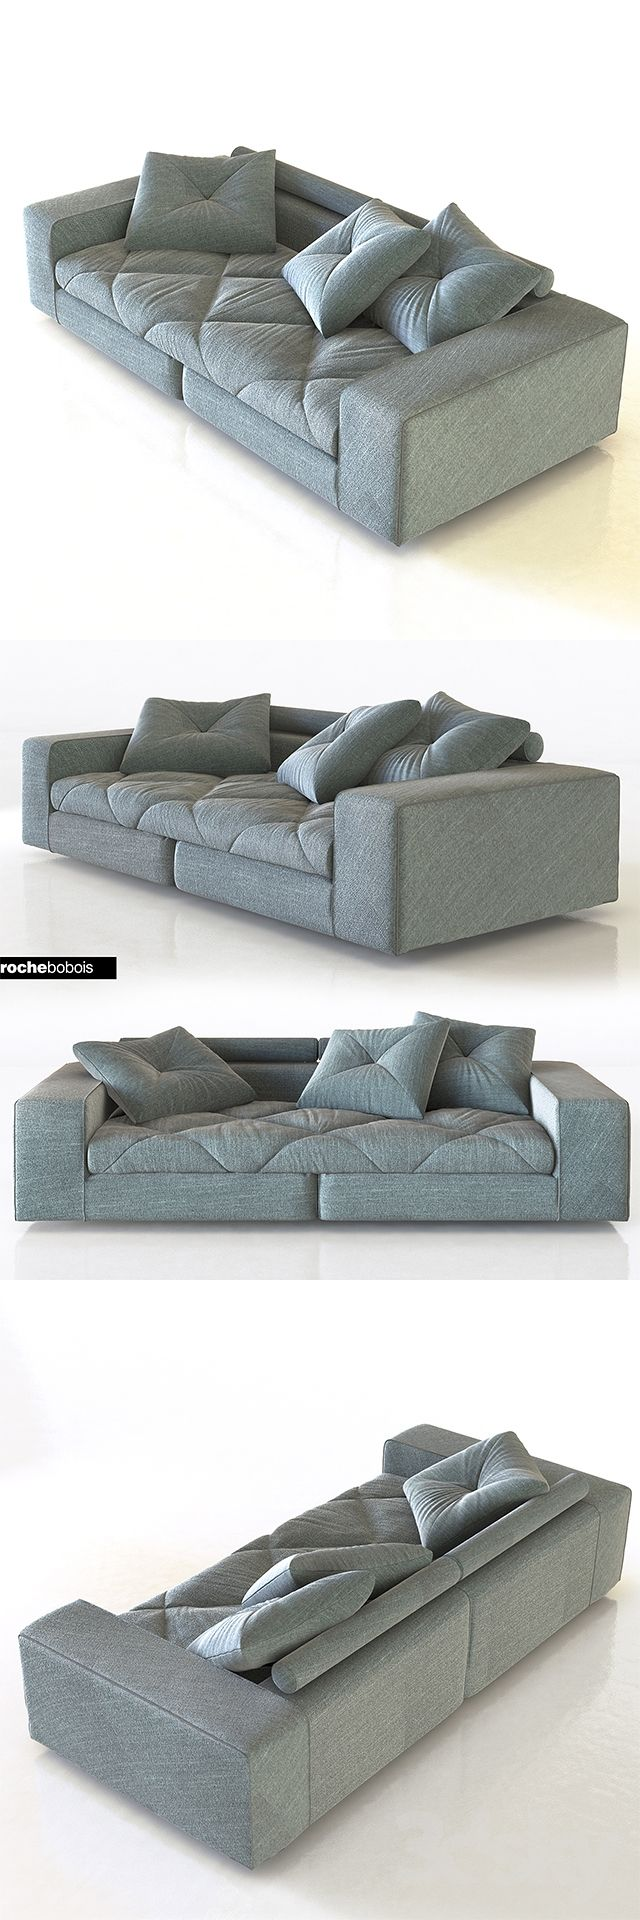 Sofa Daybed Couch Couches Grey Sofas Modular Modern Contemporary Furniture Design Ideas